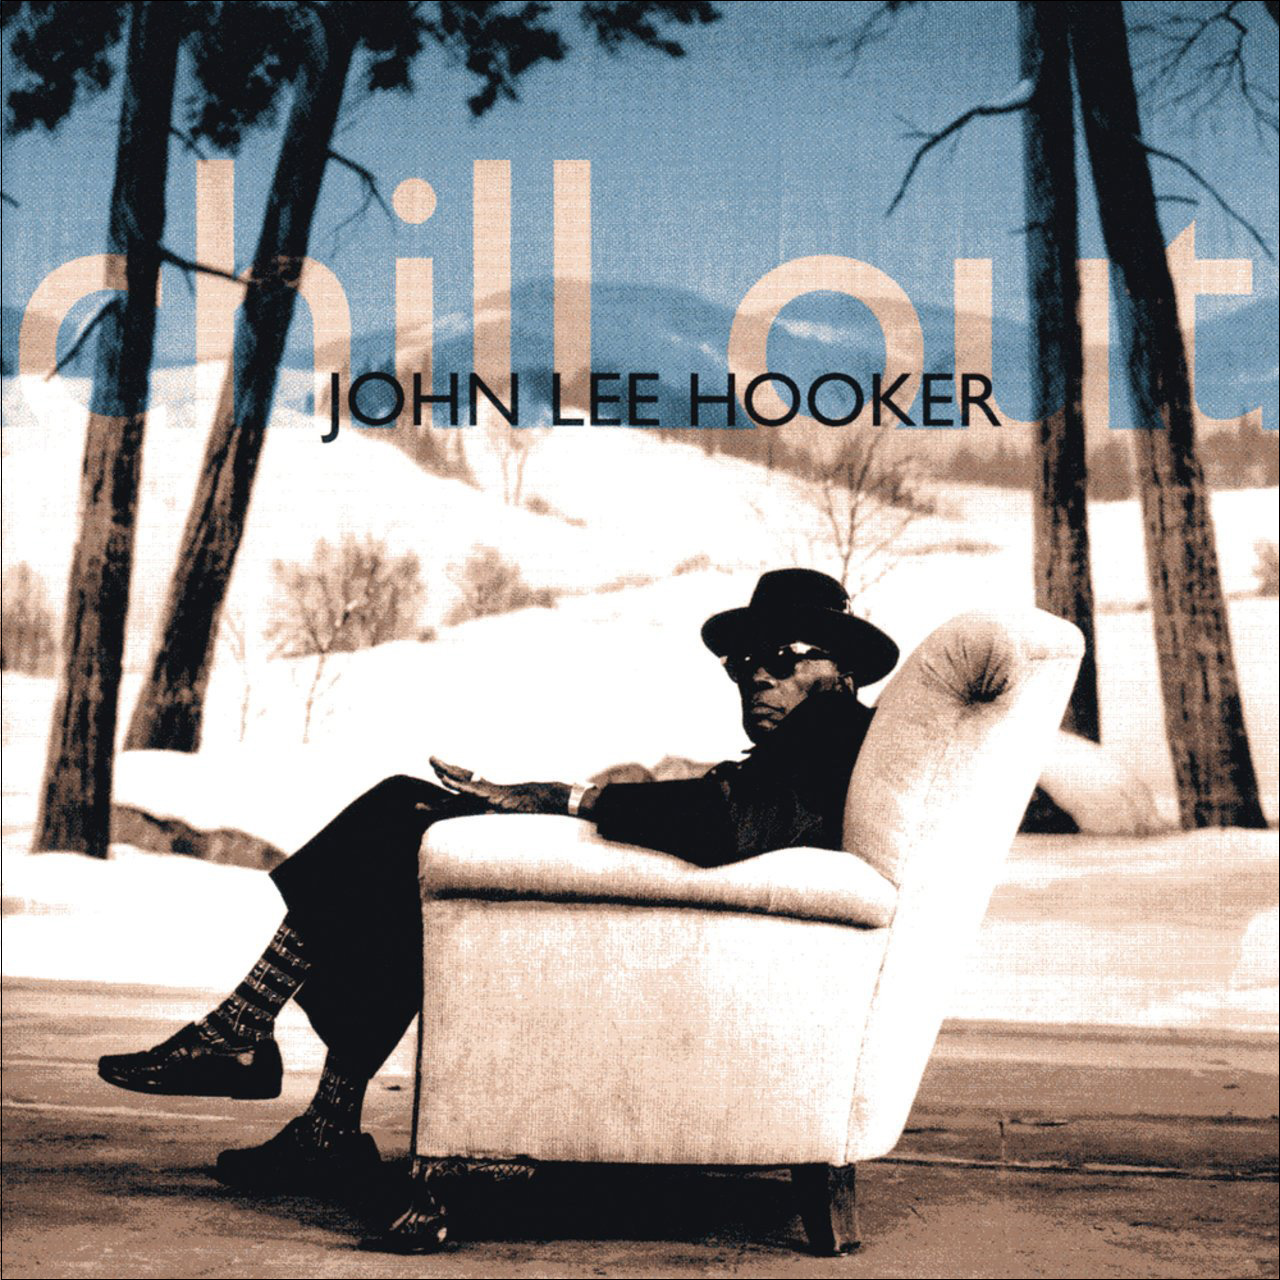 great-too-young-listen-to-too-young-by-john-lee-hooker-on-tidal-john-lee-furniture--john-lee-furniture.jpg